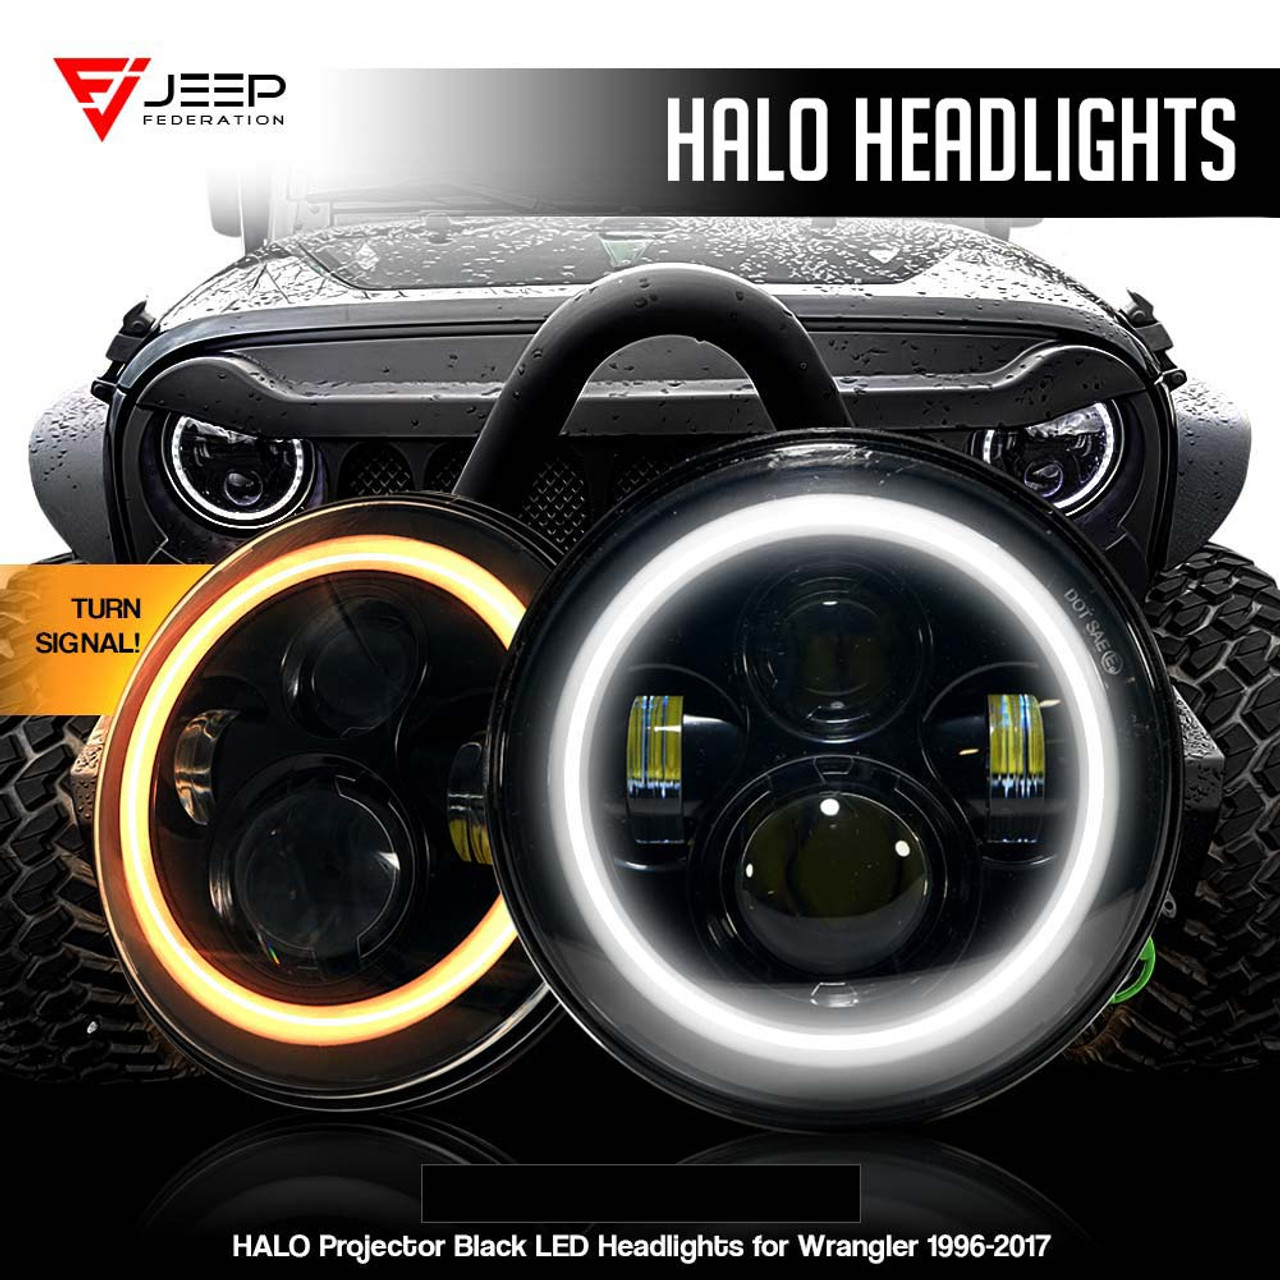 HALO Projector Black LED Headlights for Wrangler 1996-2017 ... on volkswagen passat parts diagram, halo lights diagram, 3 prong switch diagram, light bulb socket diagram, 9007 headlight plug diagram, halo headlight installation, dodge halo headlights diagram, projector headlight diagram, halo lighting diagrams, 2012 toyota tacoma headlight diagram, halo headlight assembly, halo headlight schematic, halo hid wiring, halo led can wiring, toyota tacoma parts diagram, halo projector fog lights, headlight wire harness diagram, 3 prong flasher diagram, halo headlight relay, halo headlight lighting,